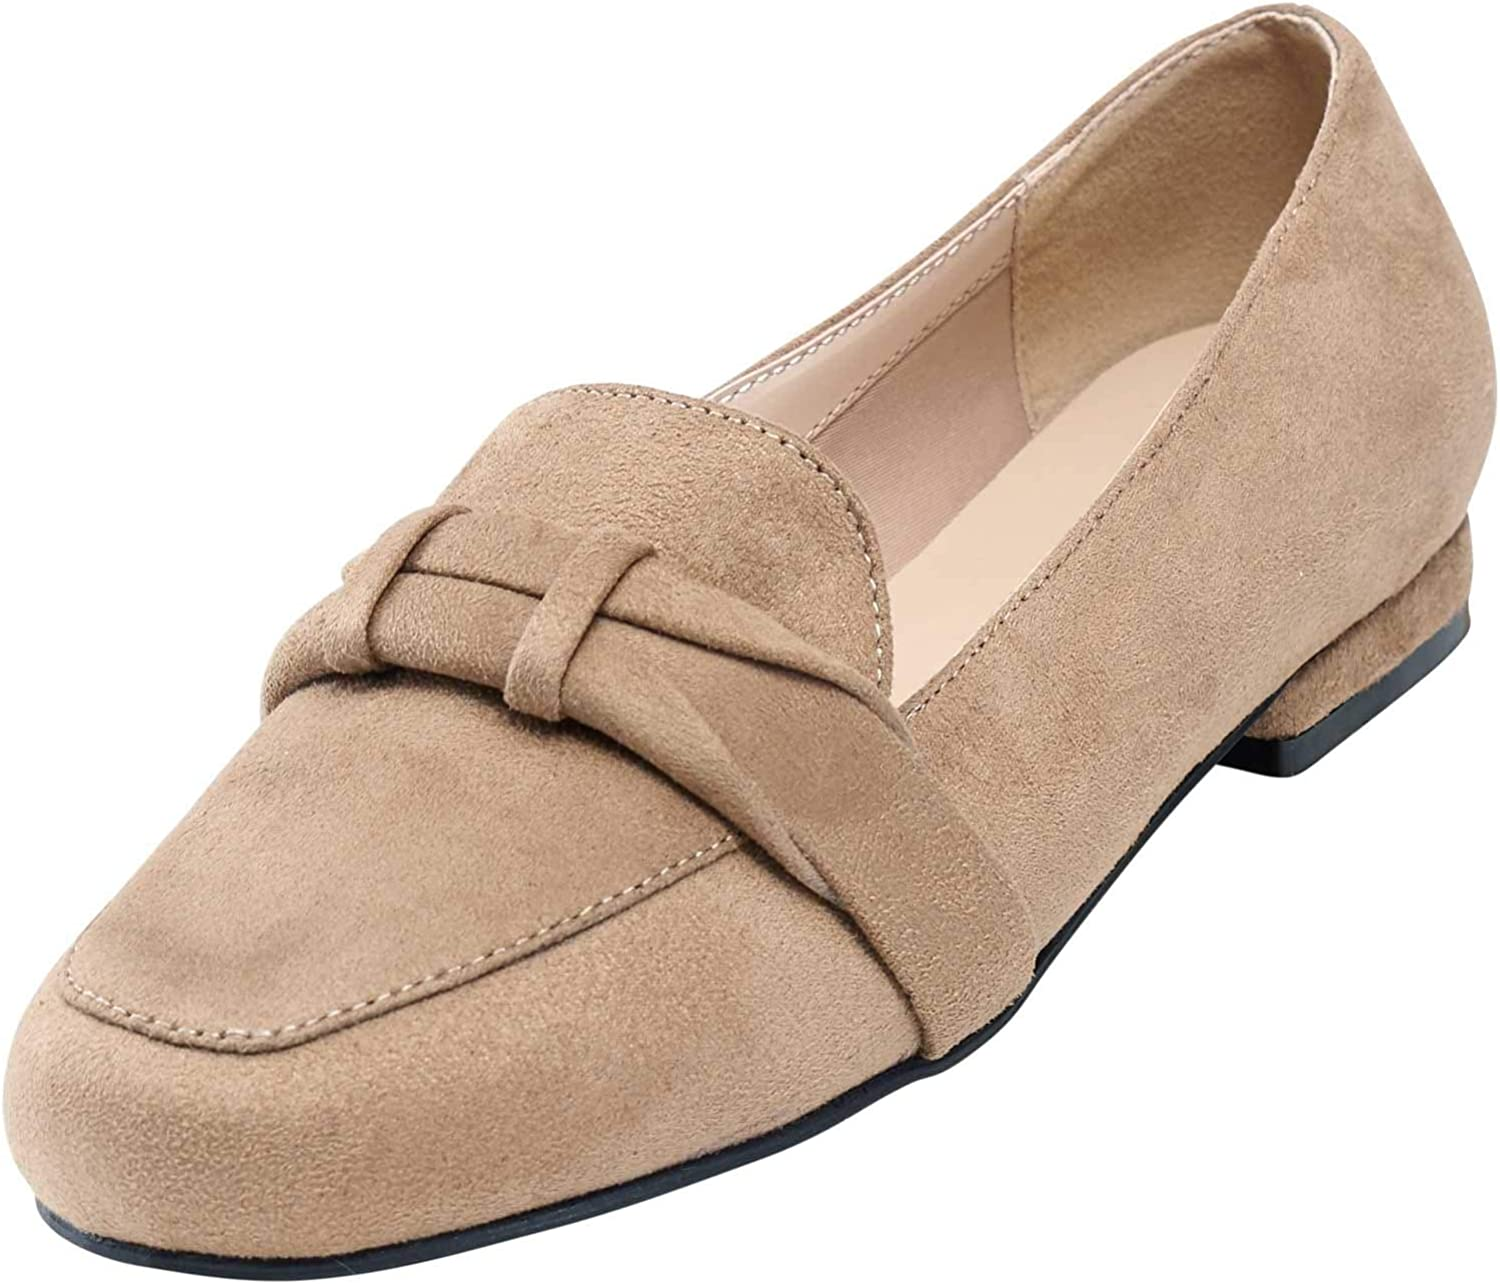 Beacon Emery Loafer